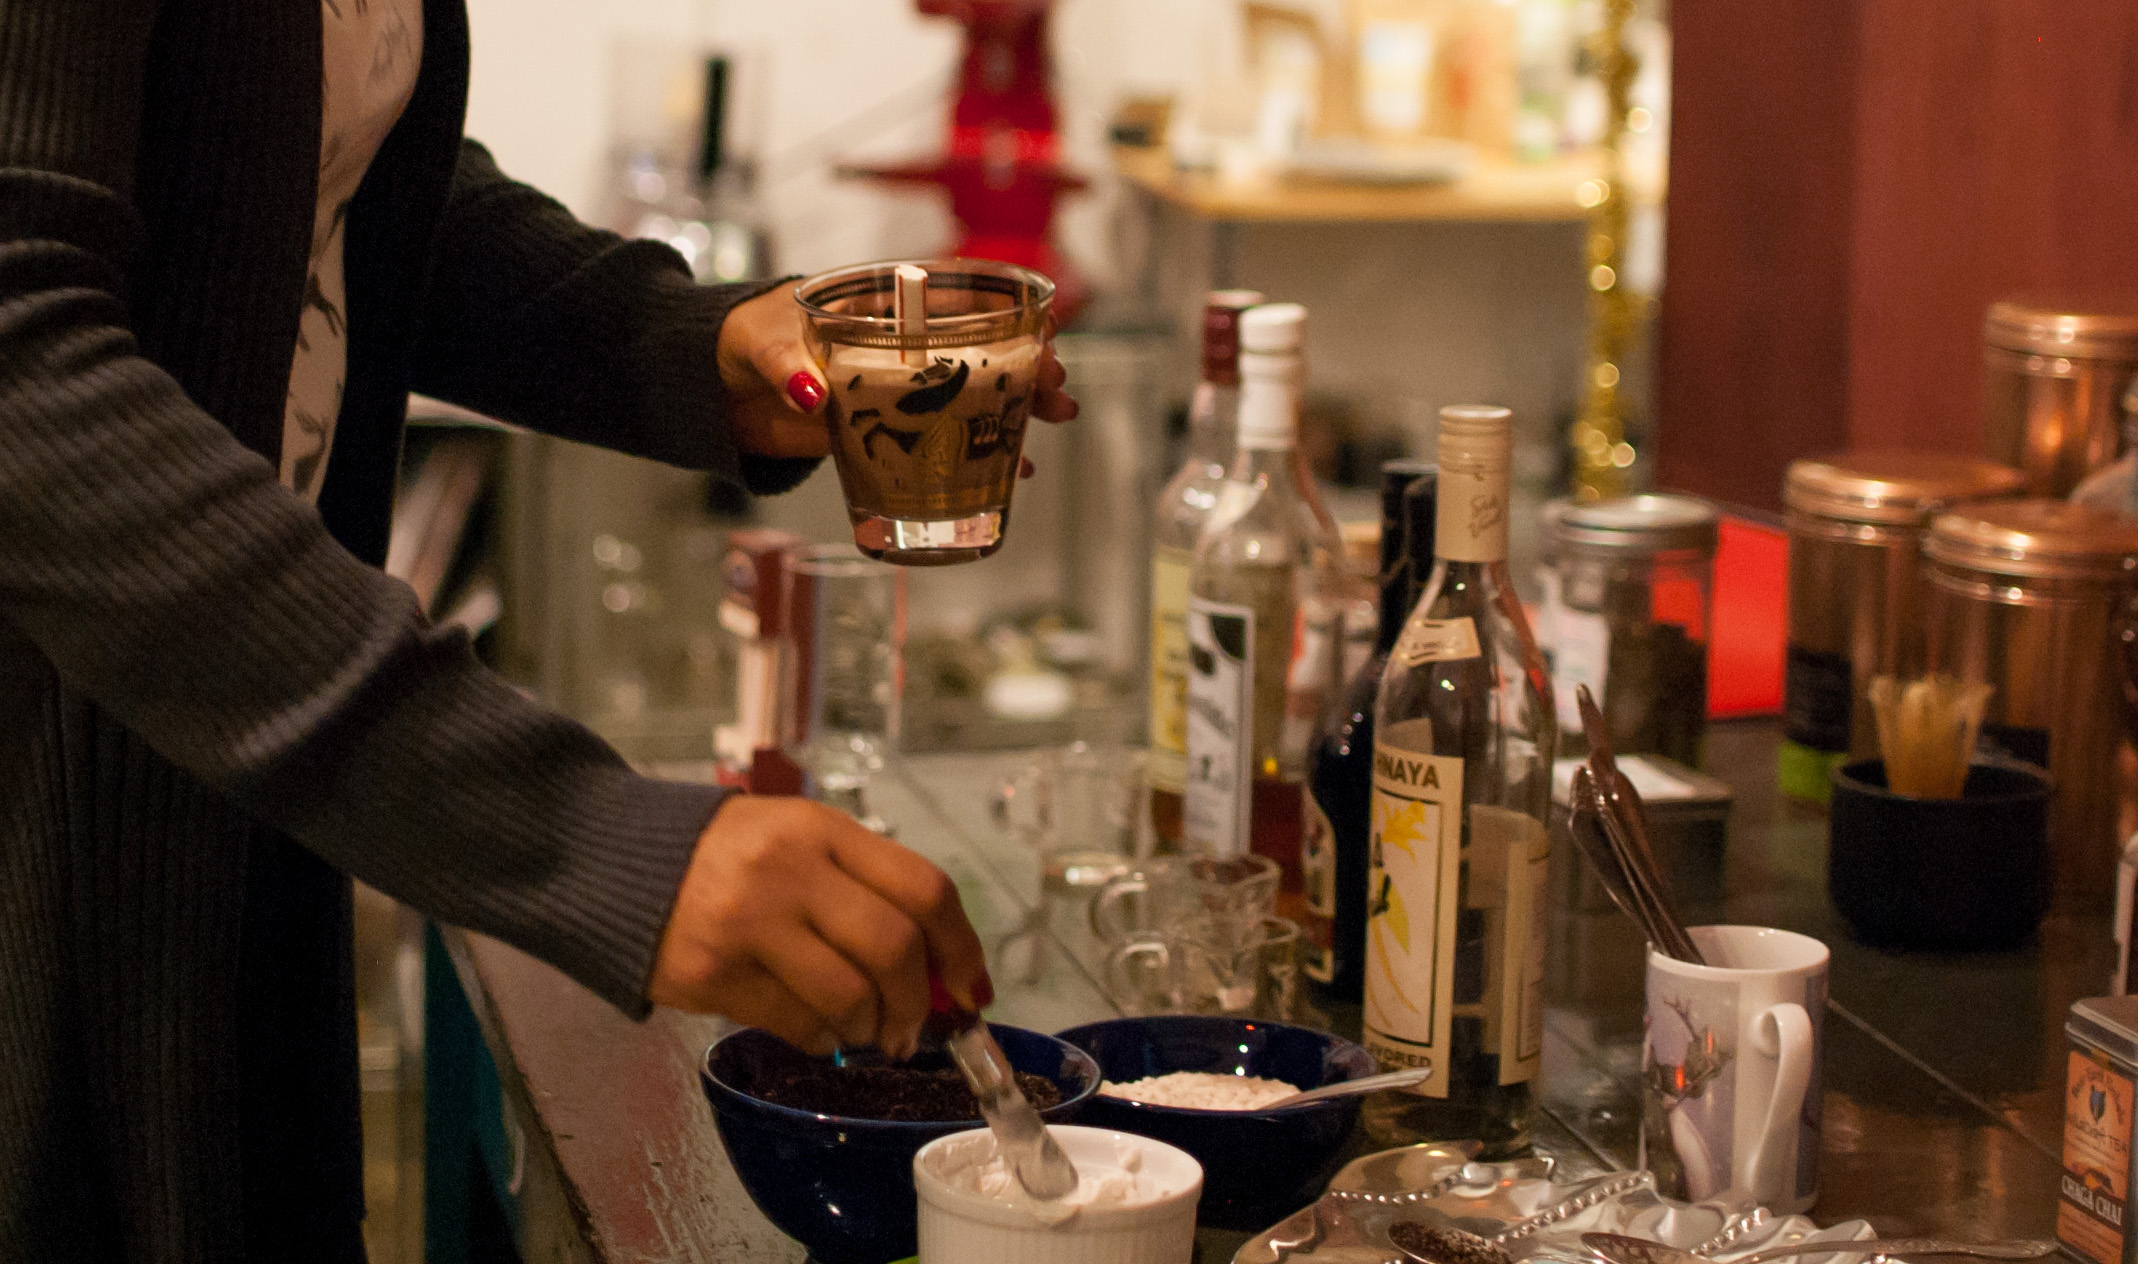 a hot cocoa bar equipped with peppermint stir sticks, crushed candy canes, cookies, coconut cream, and...booze!